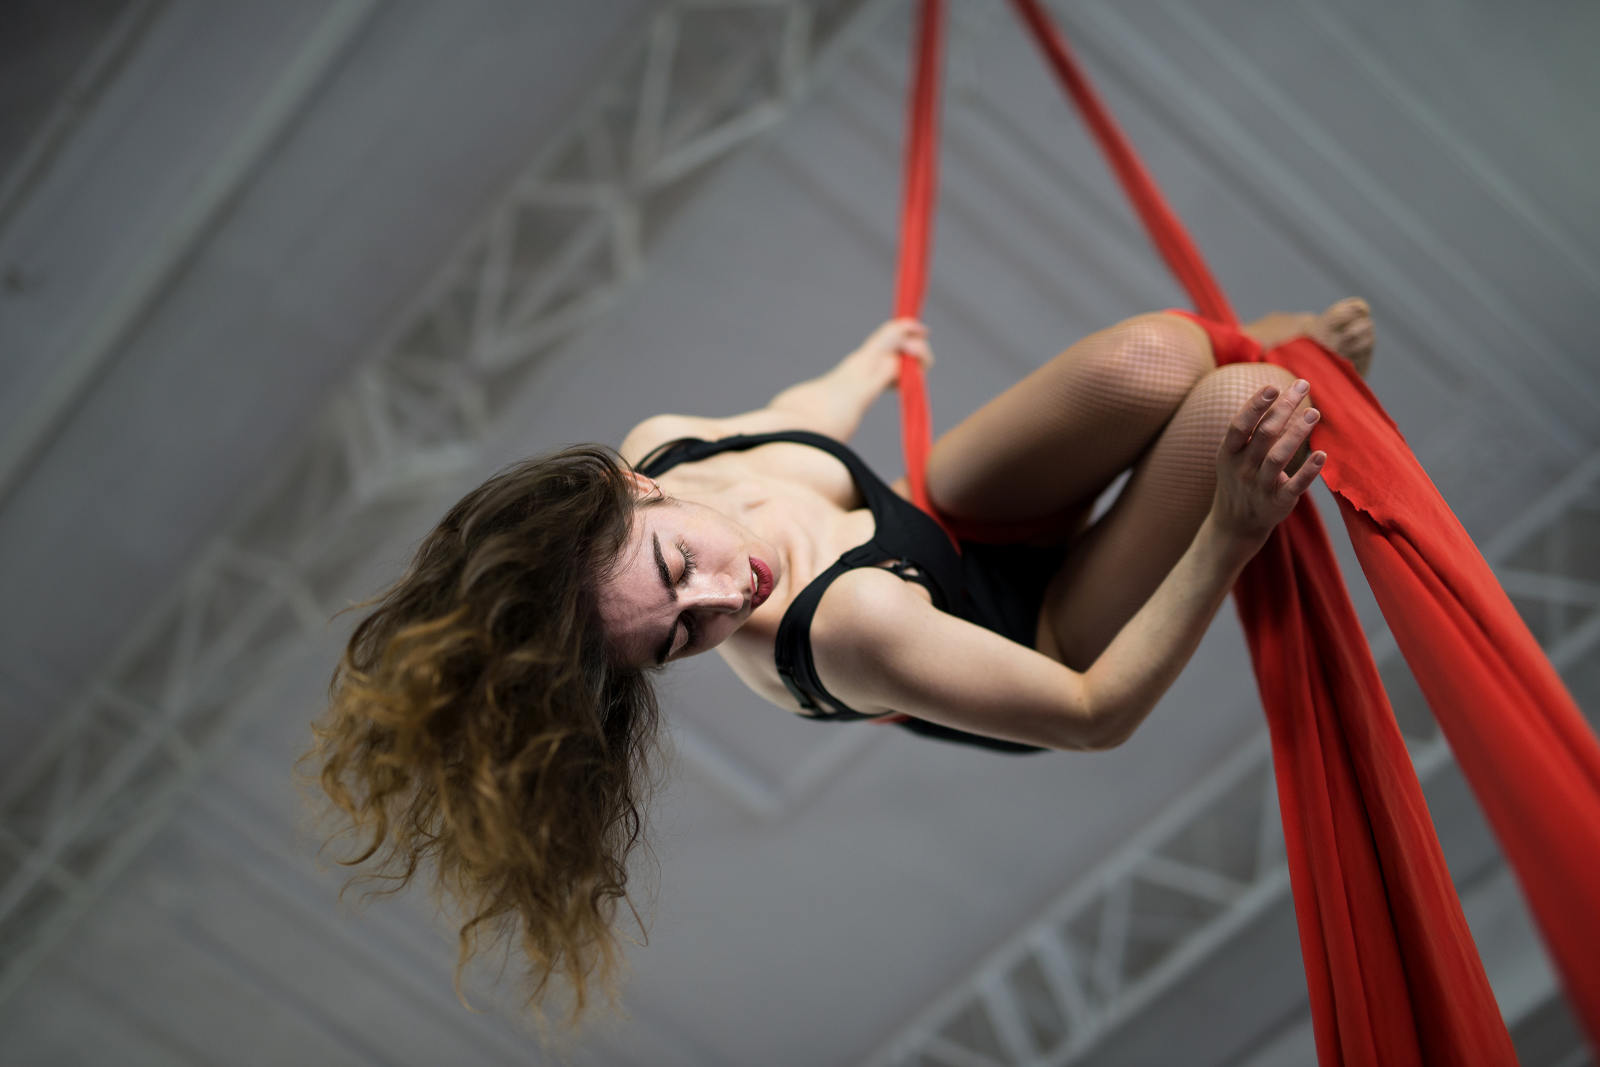 Elena-Aerial-Silks-Dancer